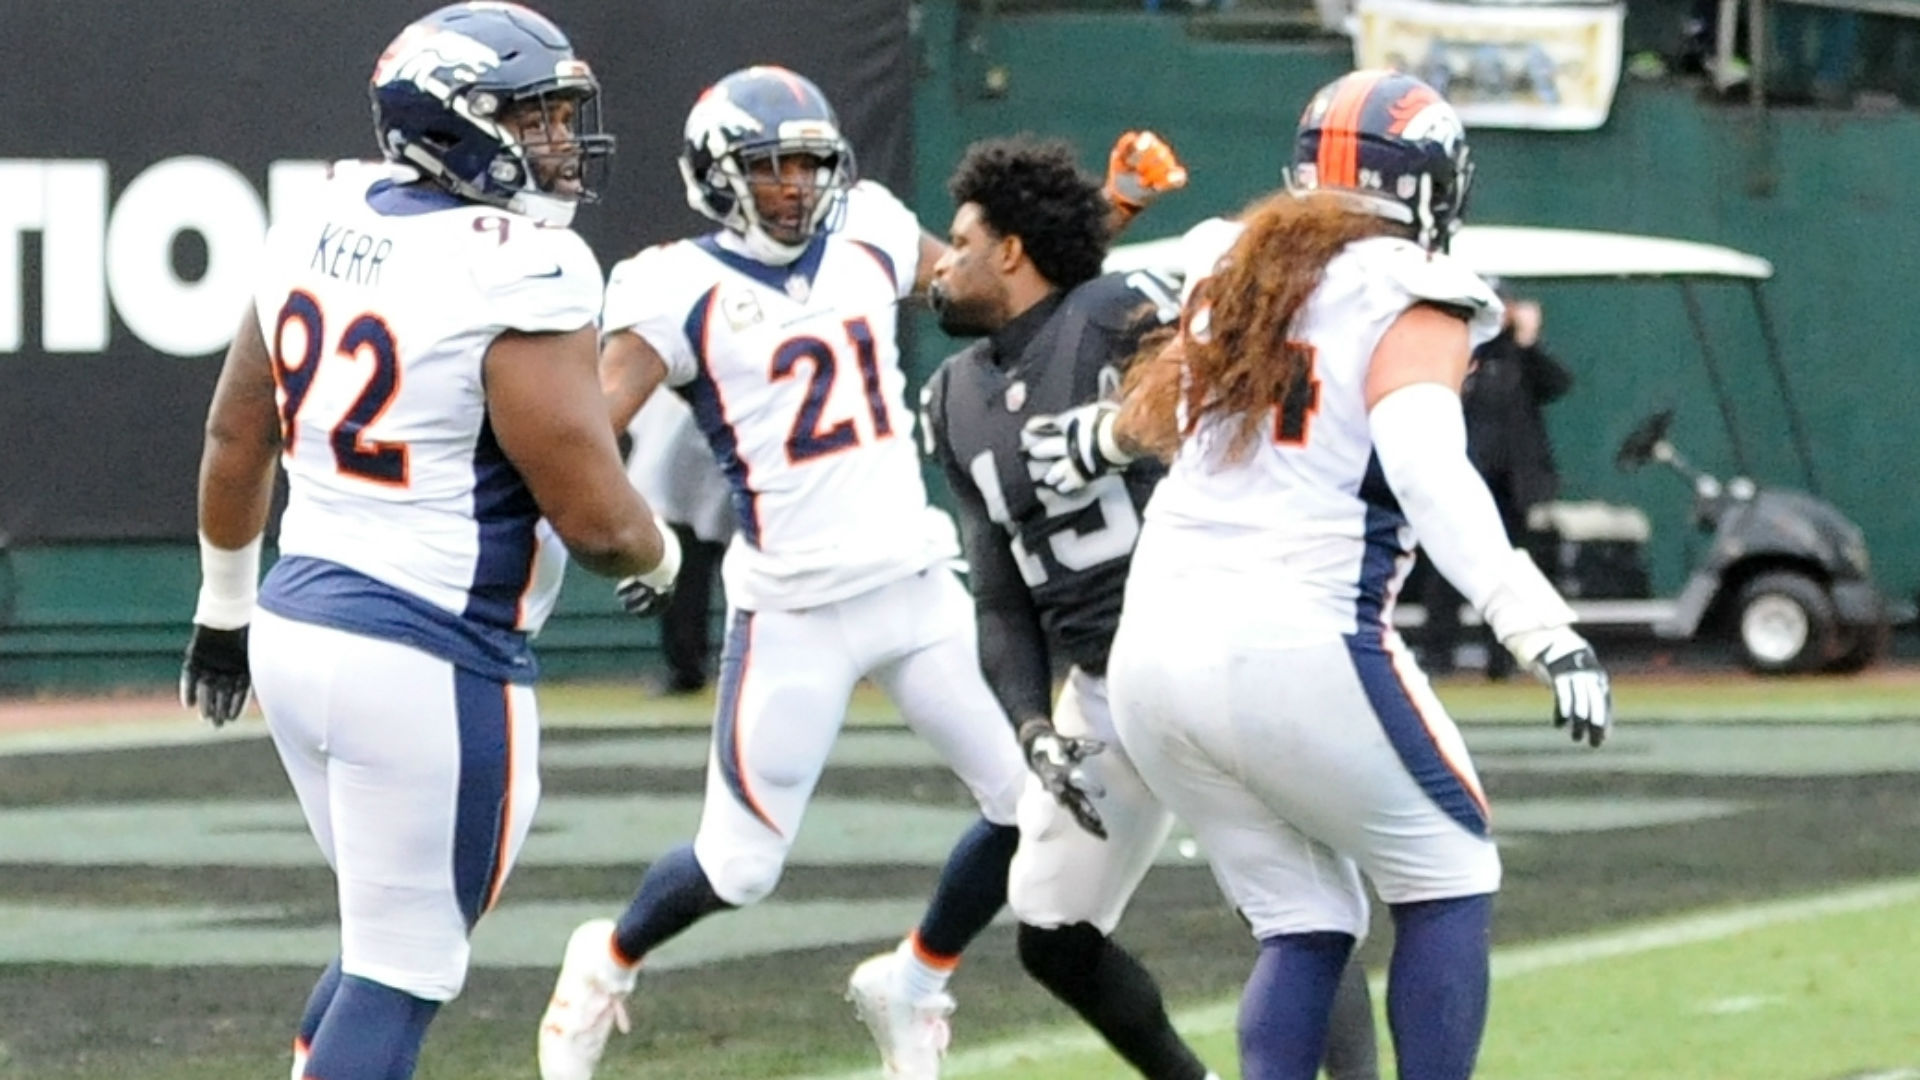 Michael Crabtree and Aqib Talib fight in Raiders-Broncos game